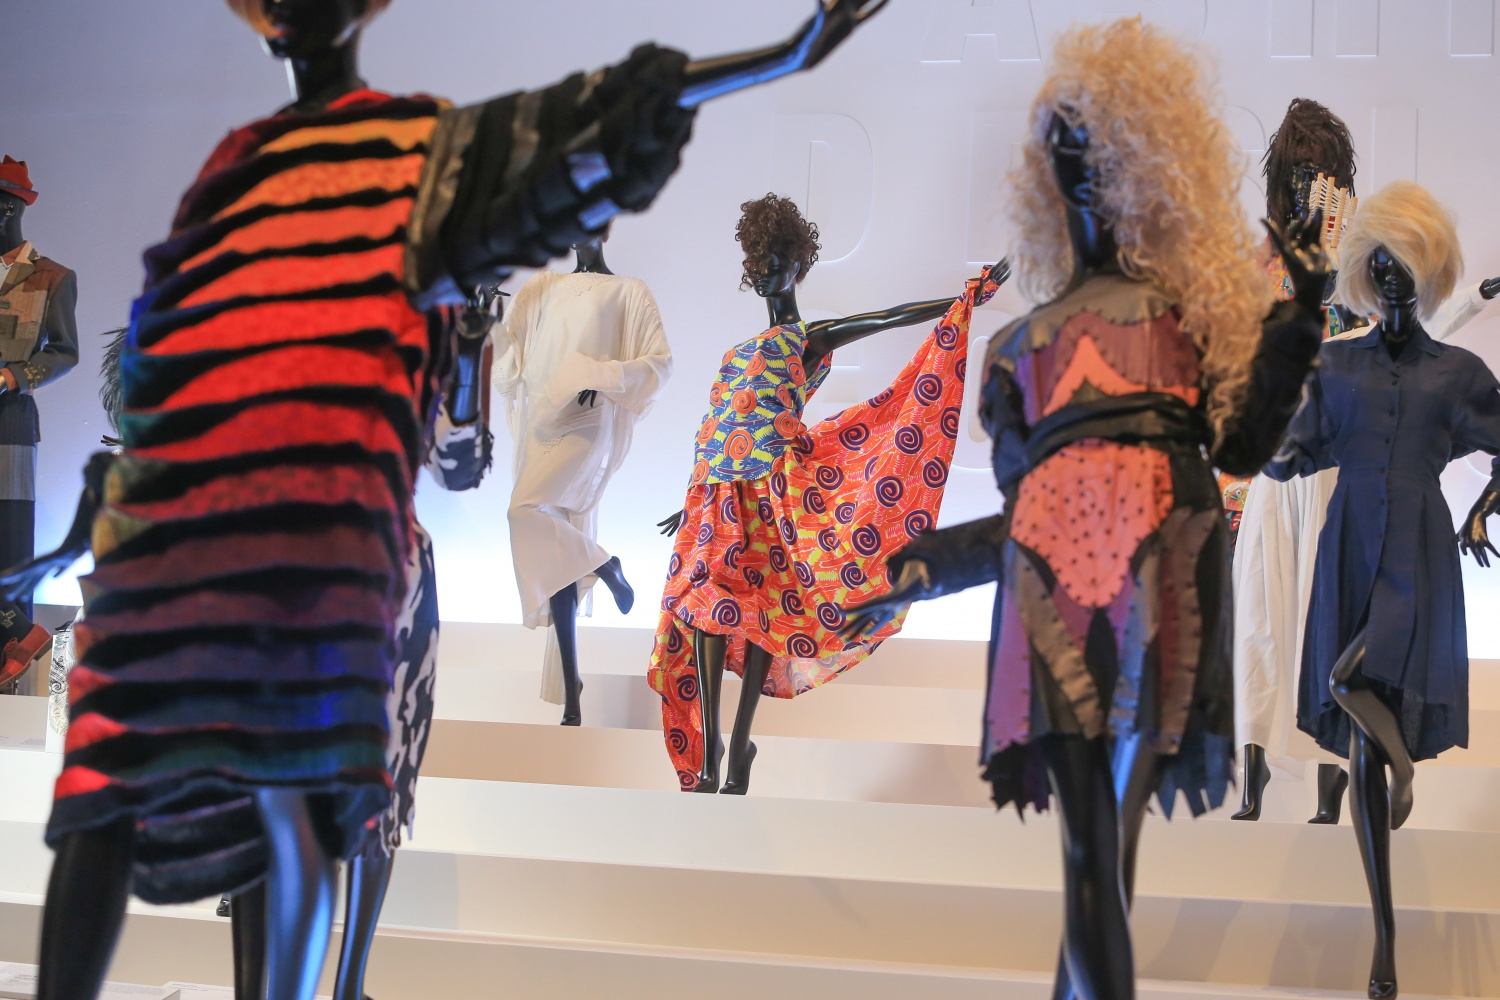 200 years of fashion NGV, On The List Melburne